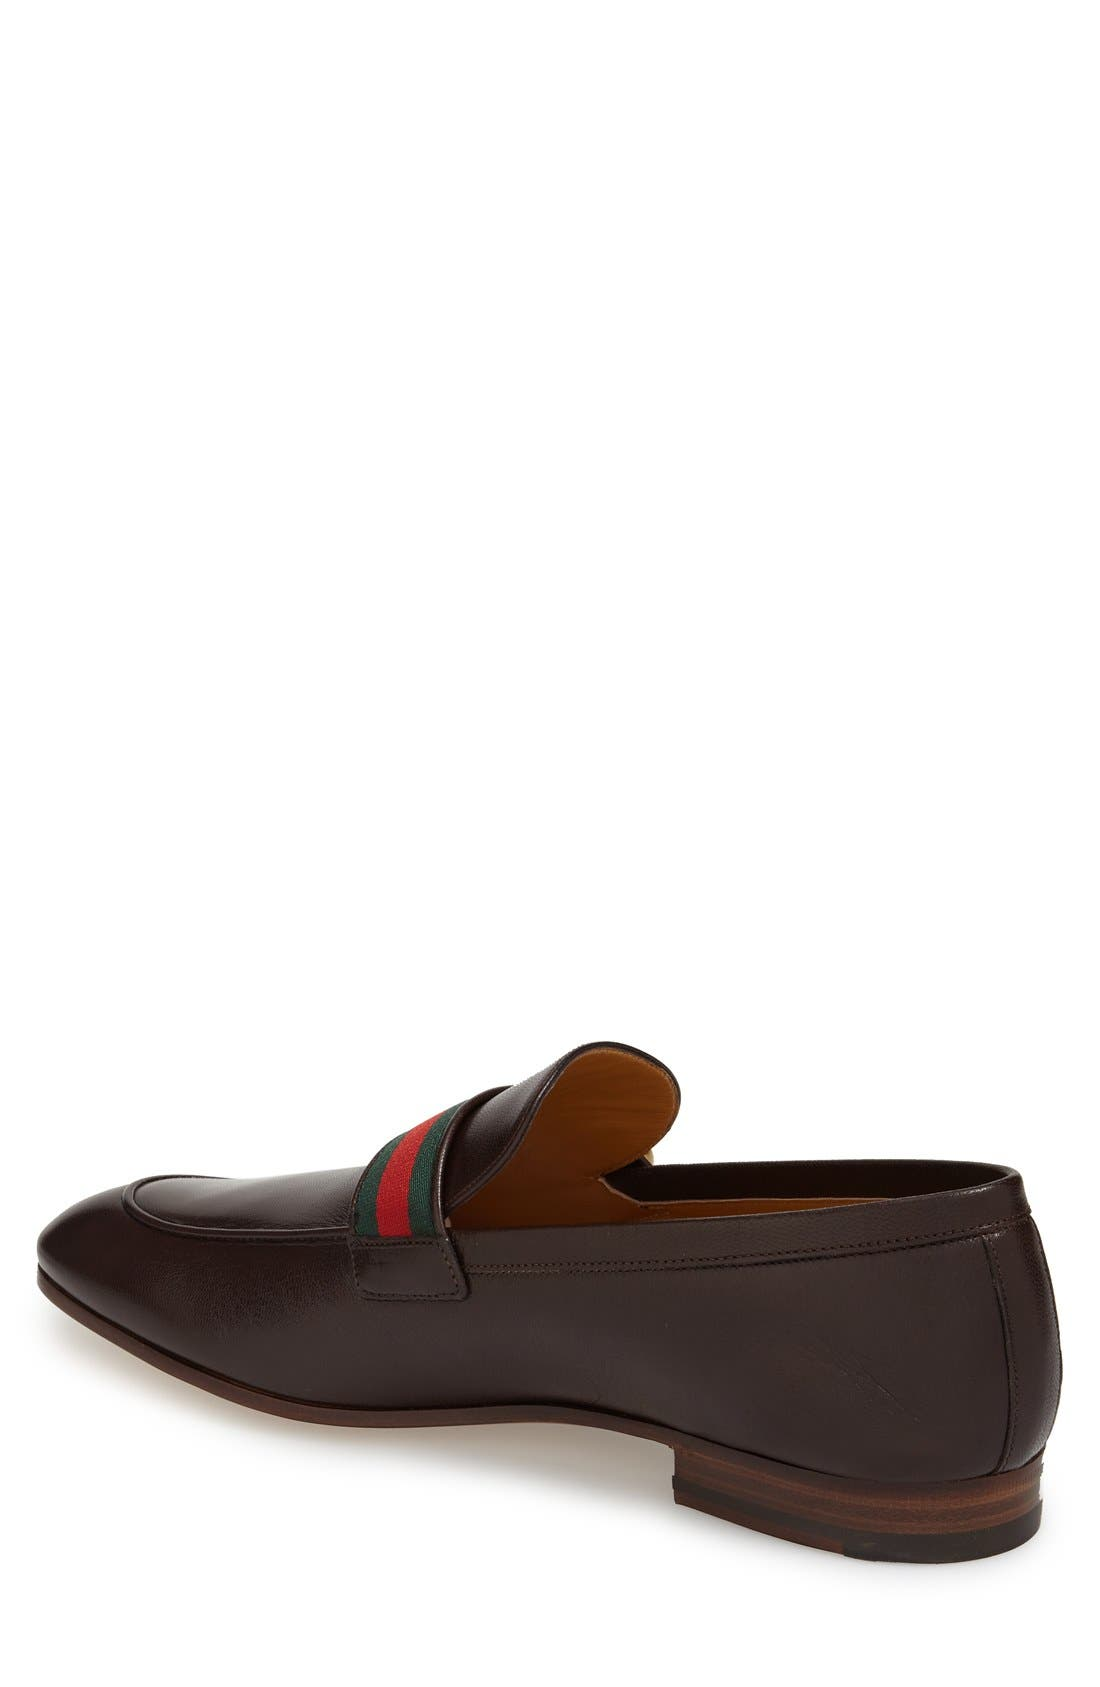 Donnie Bit Loafer,                             Alternate thumbnail 9, color,